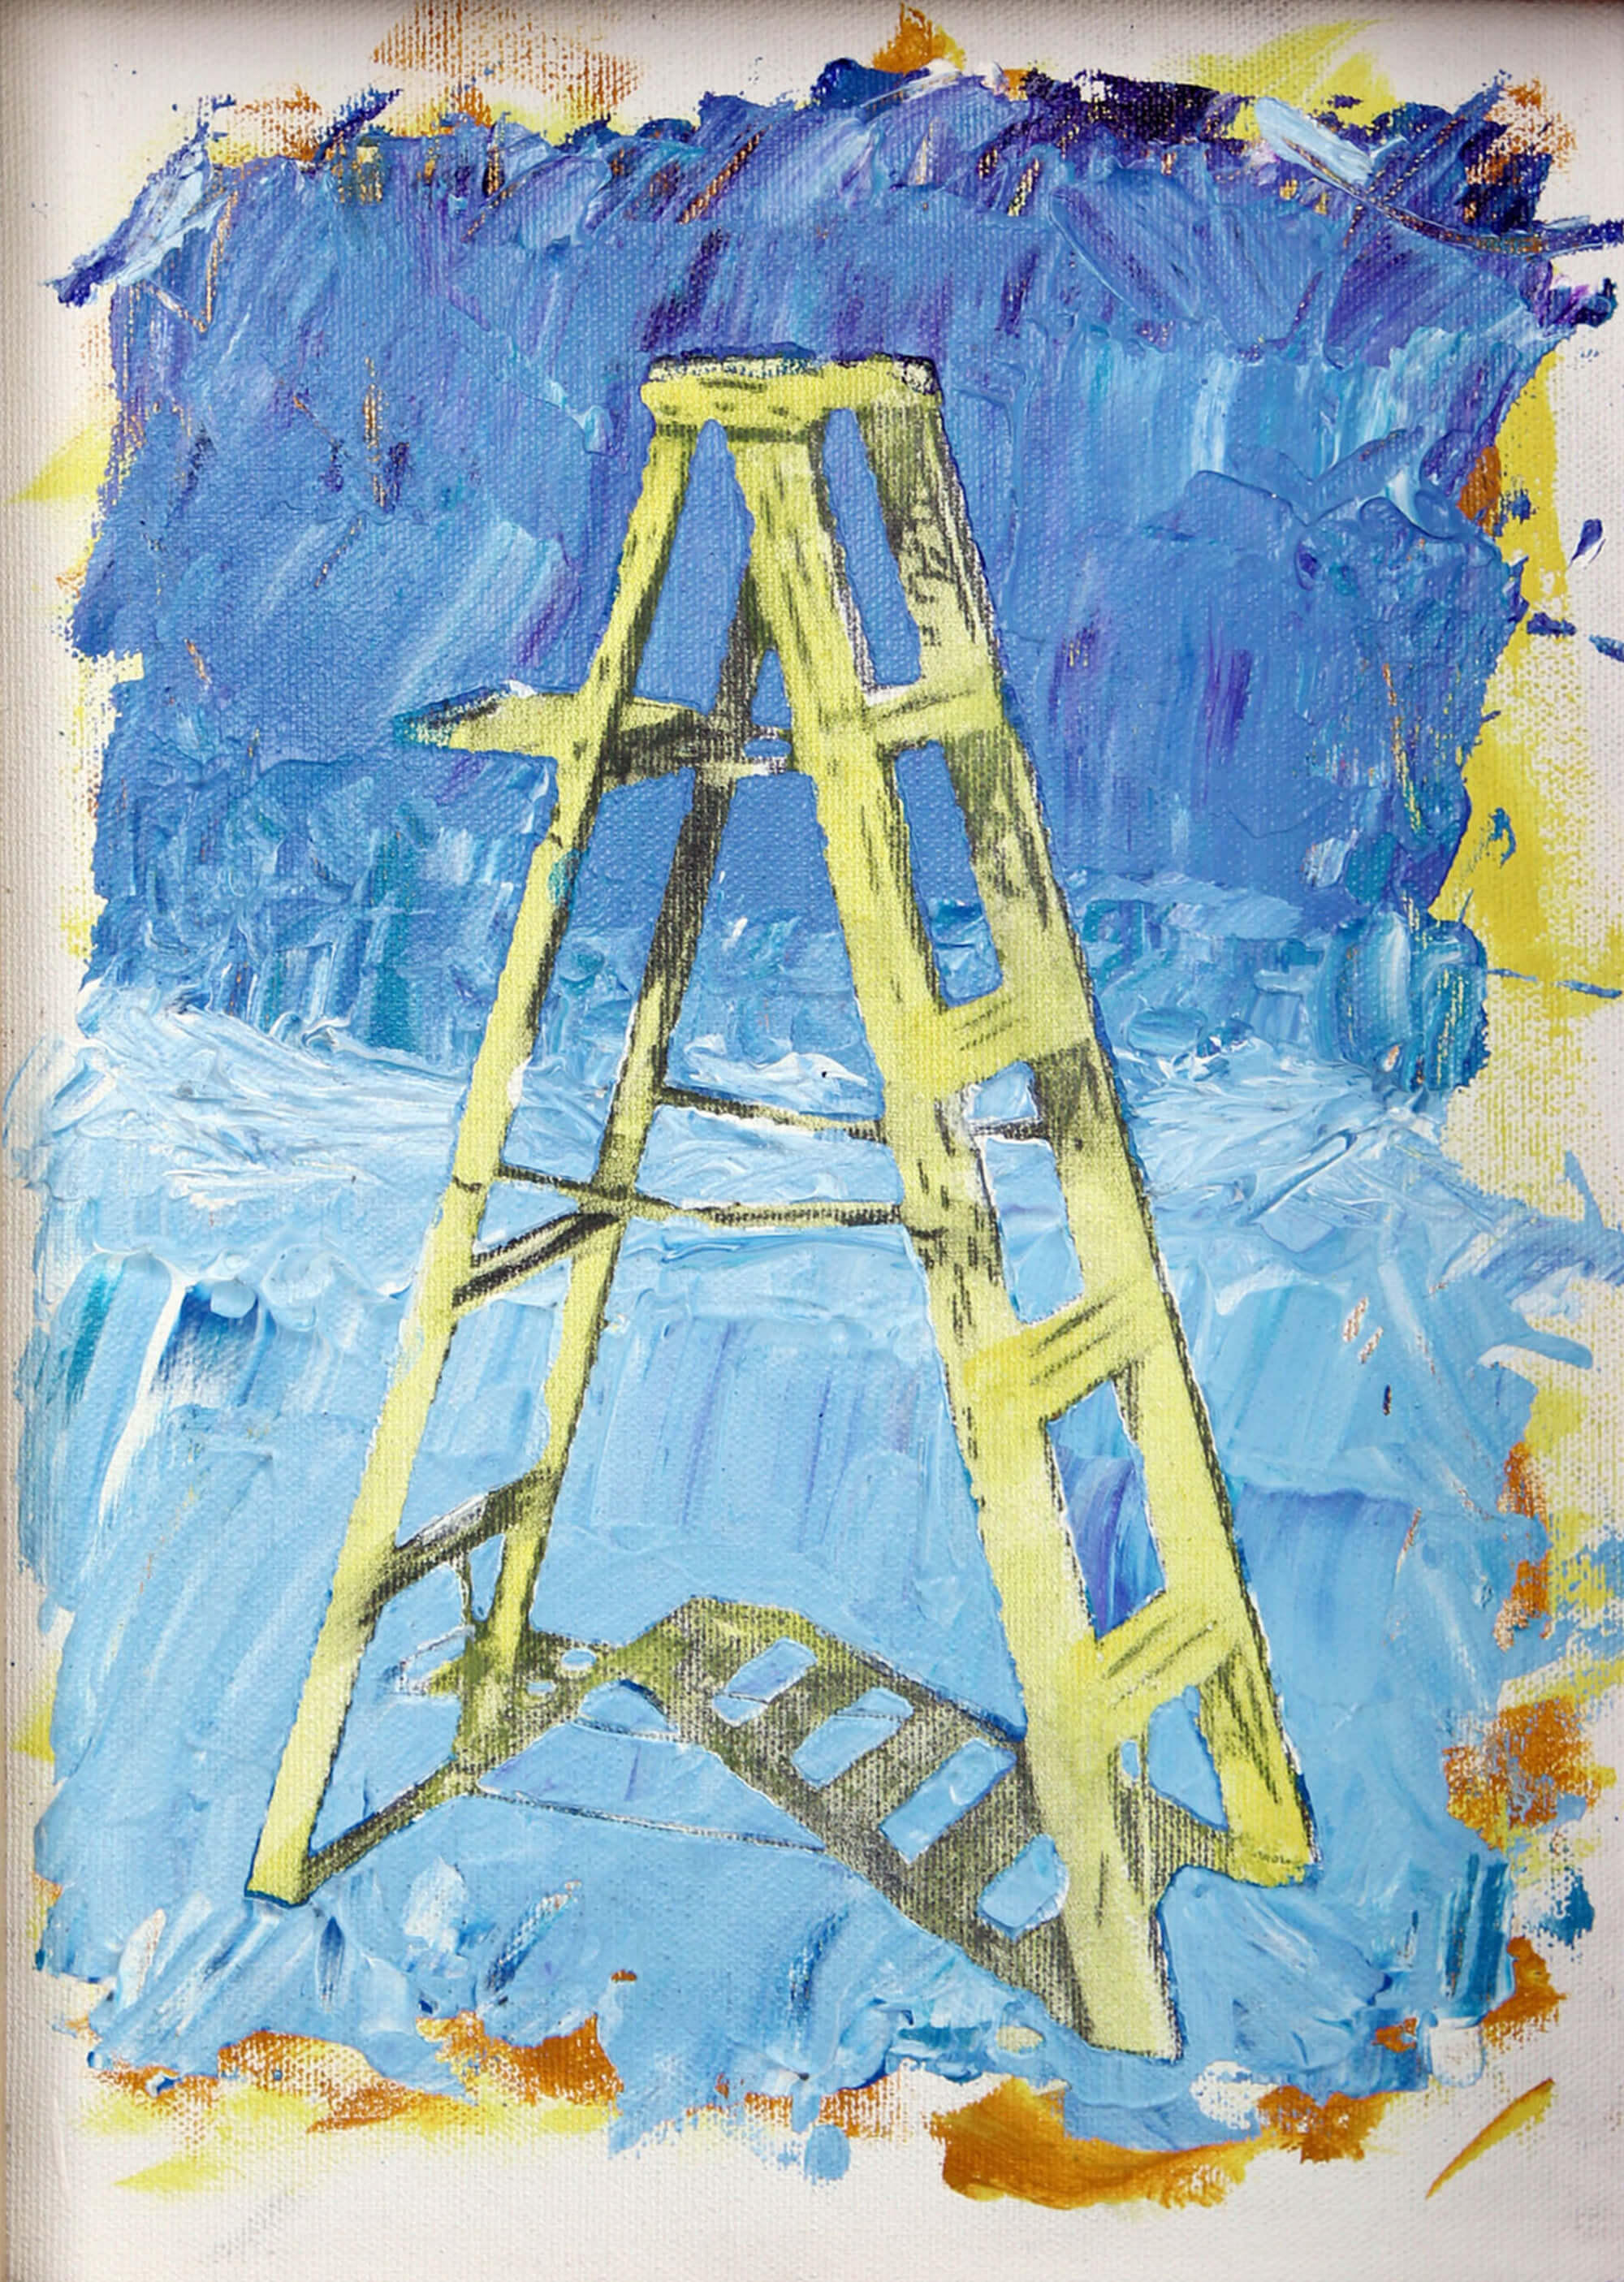 Acrylic and pencil painting of light green stepladder with blue background as metaphor of ascending by Ludwig Medina